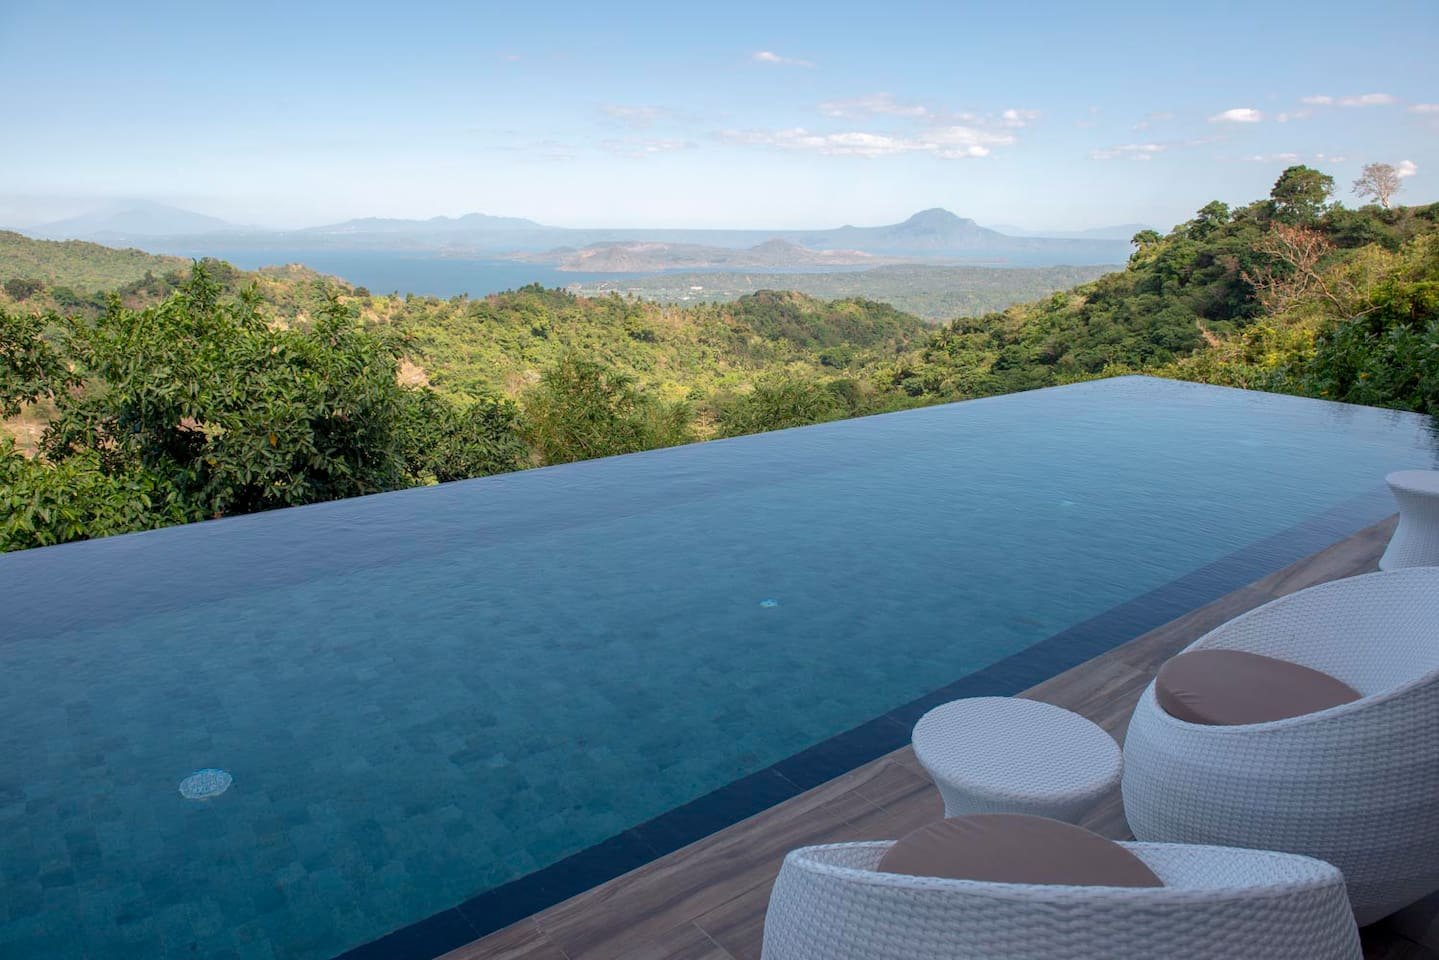 Infinity Pool with view of Taal